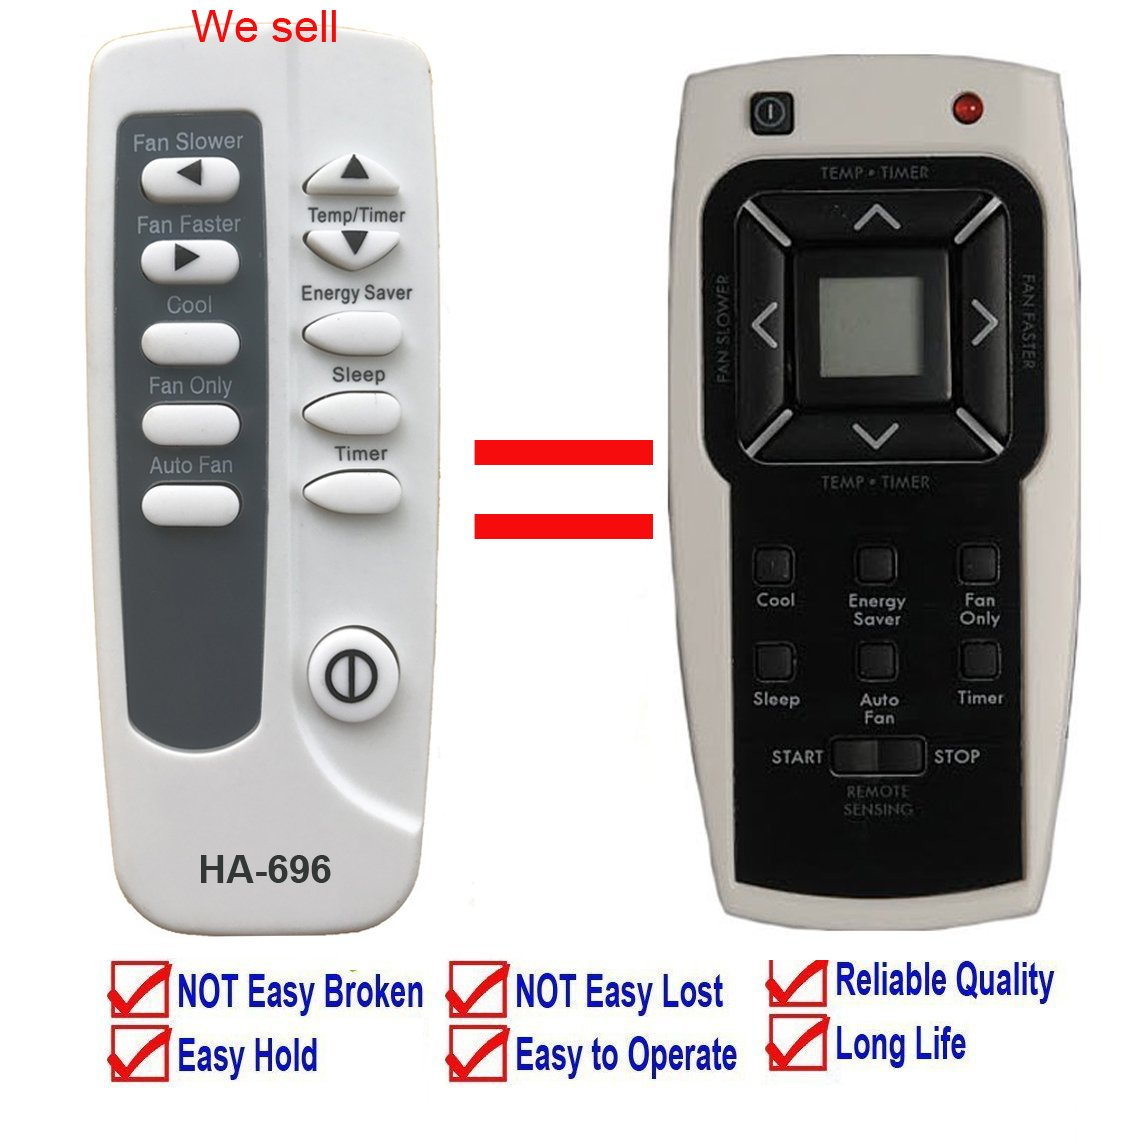 YING RAY Replacement for Kenmore Air Conditioner Remote Control 5304476246 for Model 253.70085 253.70085010 253.70085011 253.70135010 253.70135011 253.70181 253.70181010 253.70181011 253.70181012